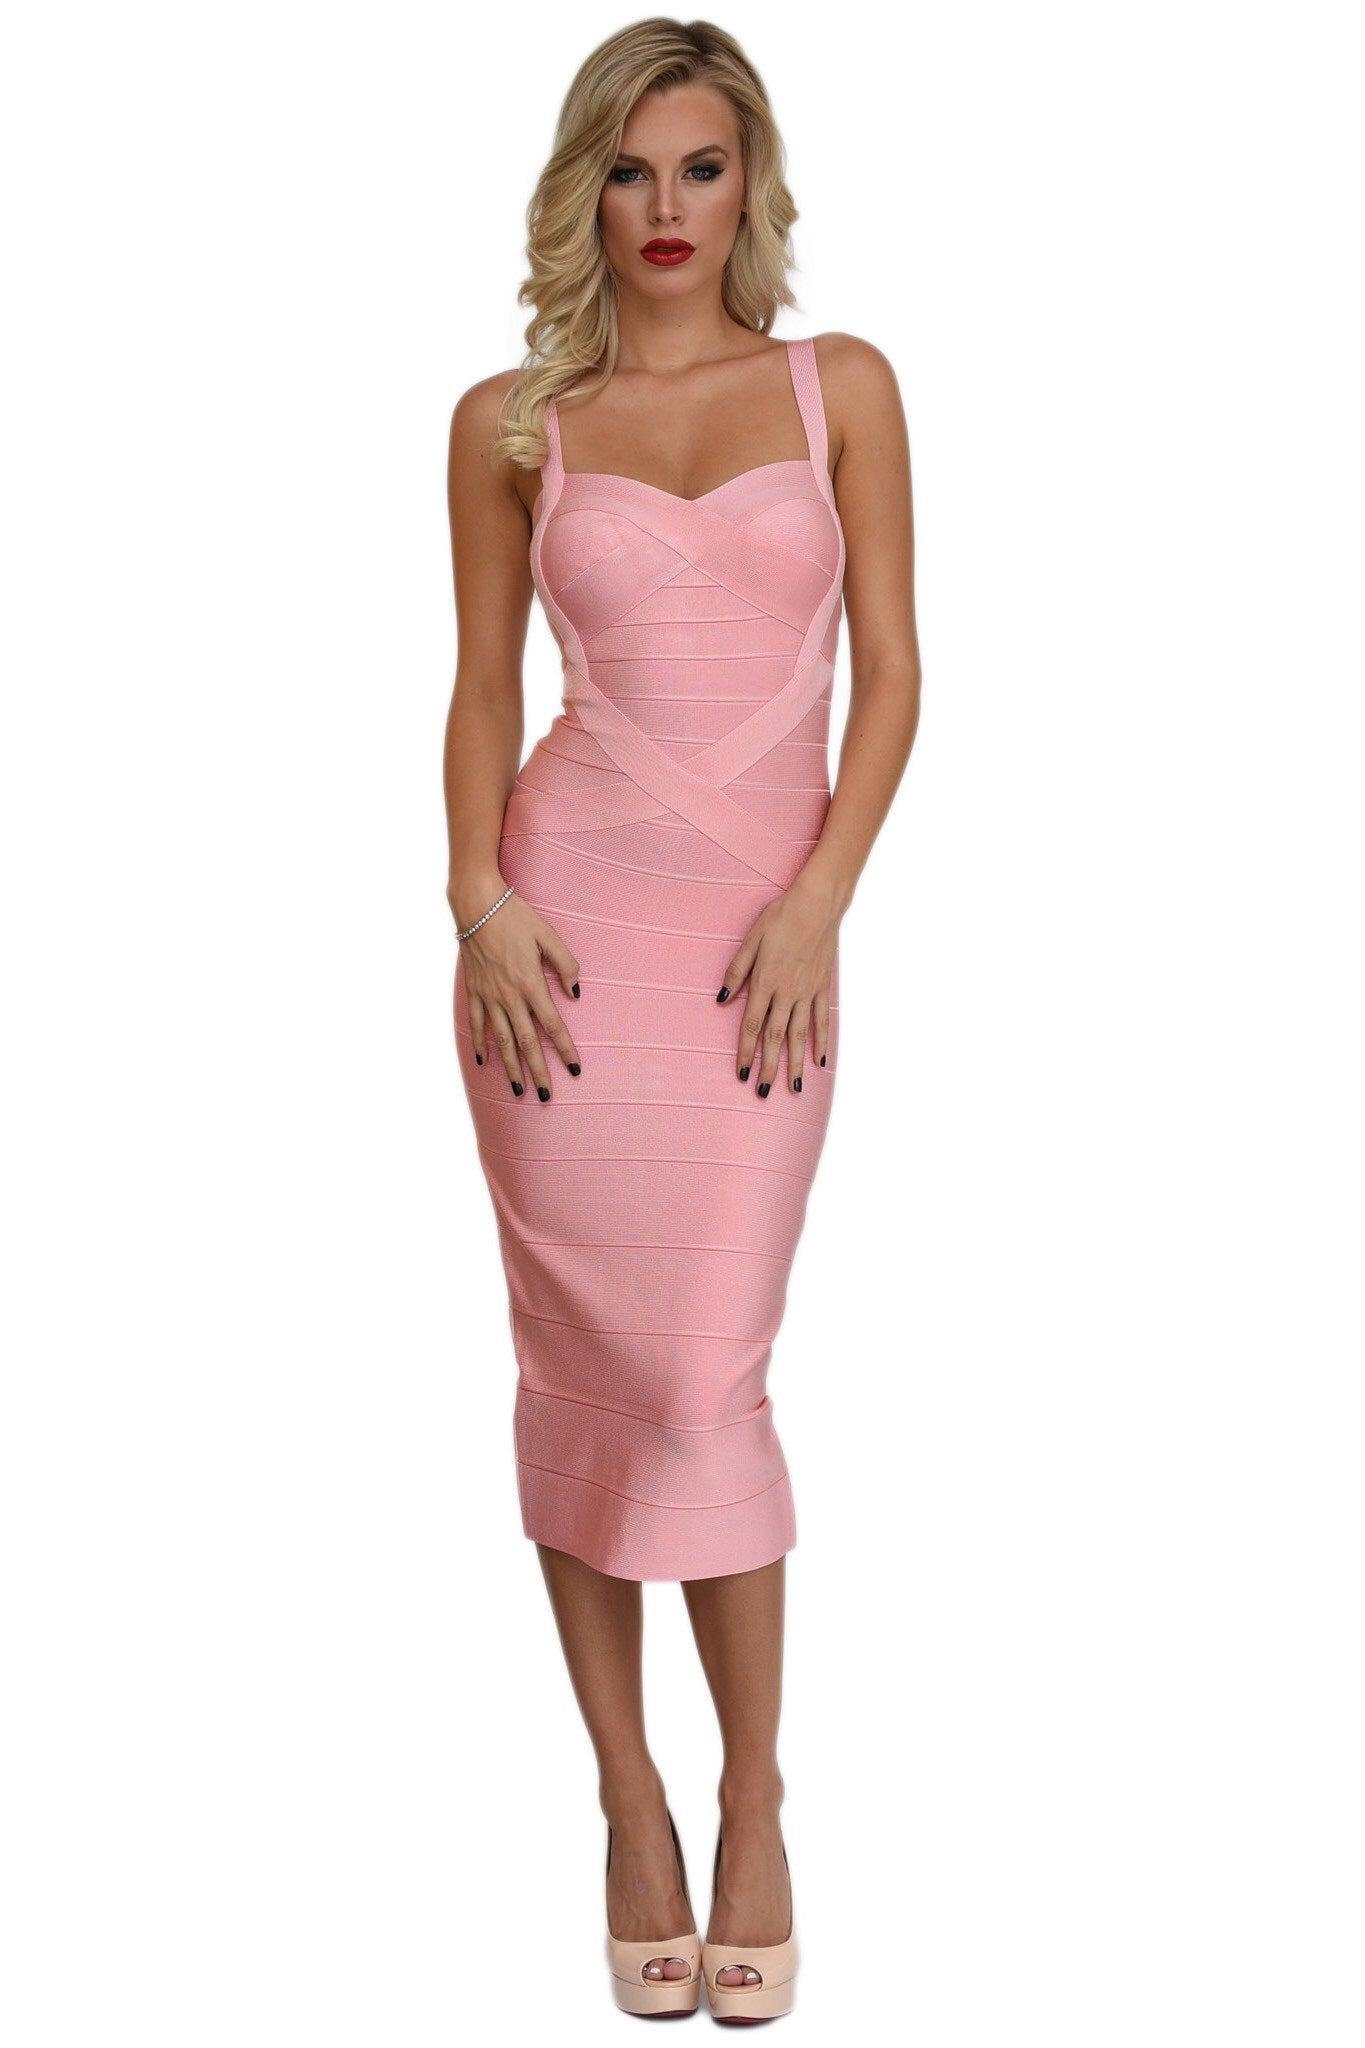 Vogue Pink Bandage Dress